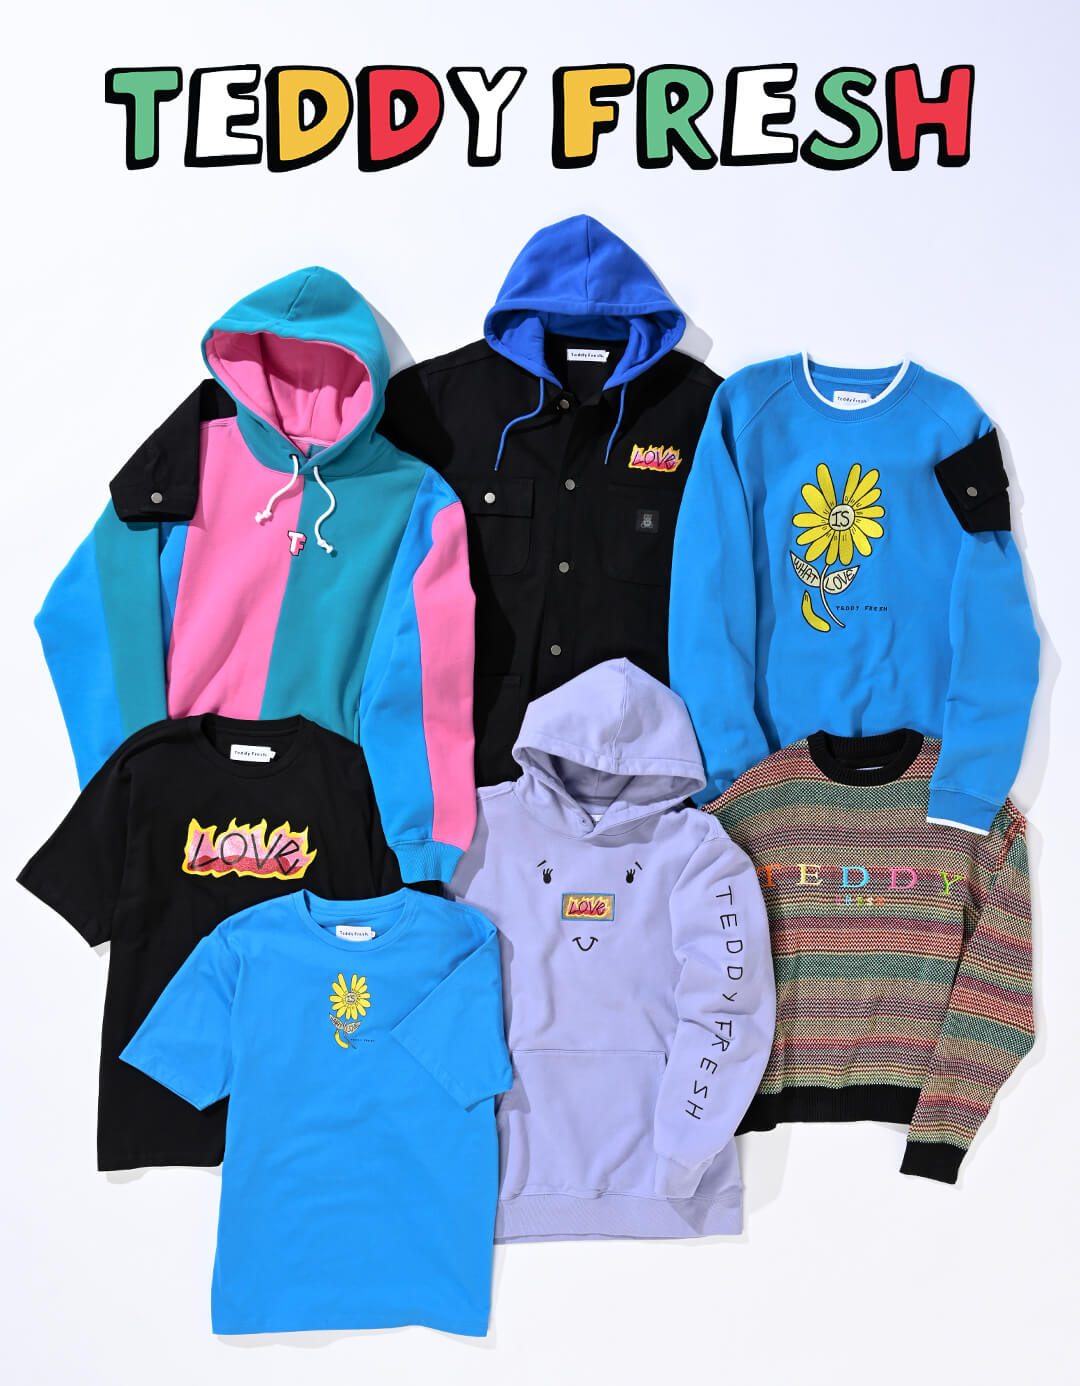 TEDDY FRESH NEW ARRIVALS - THE COLORBLOCK STYLES ON EVERYONE'S LIST-SHOP NOW